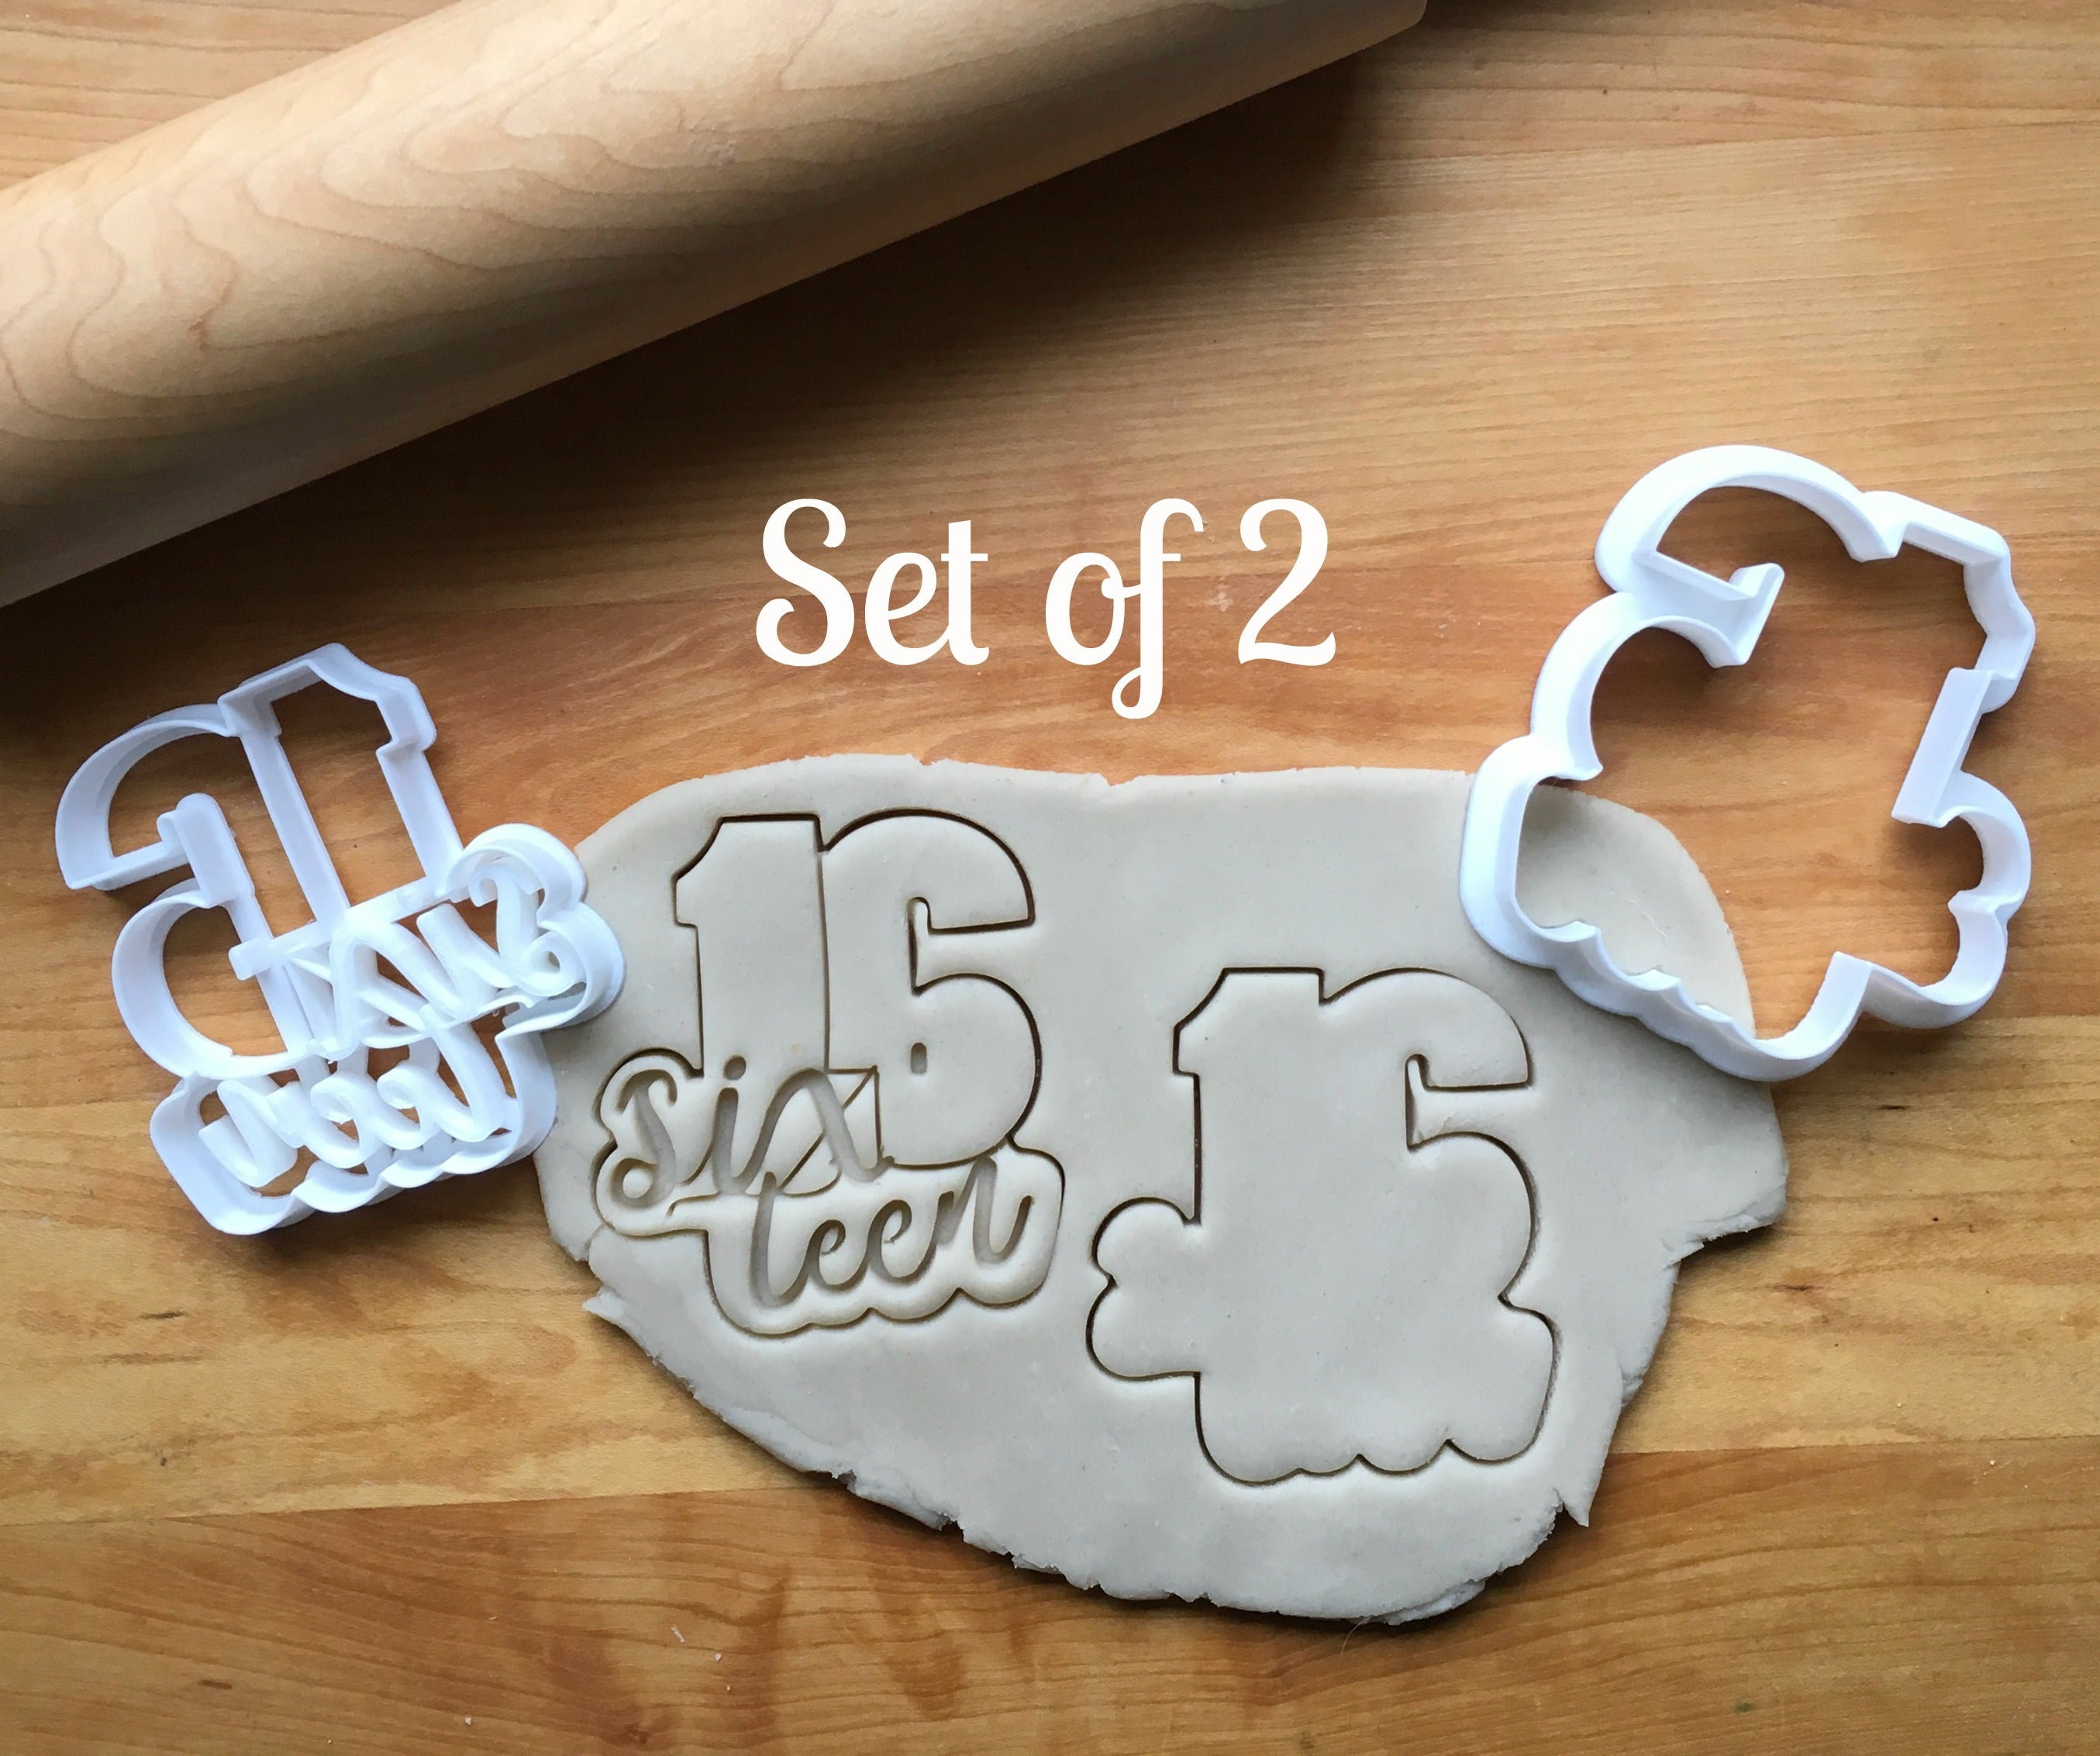 Set of 2 Lettered Number 16 Cookie Cutters/Dishwasher Safe